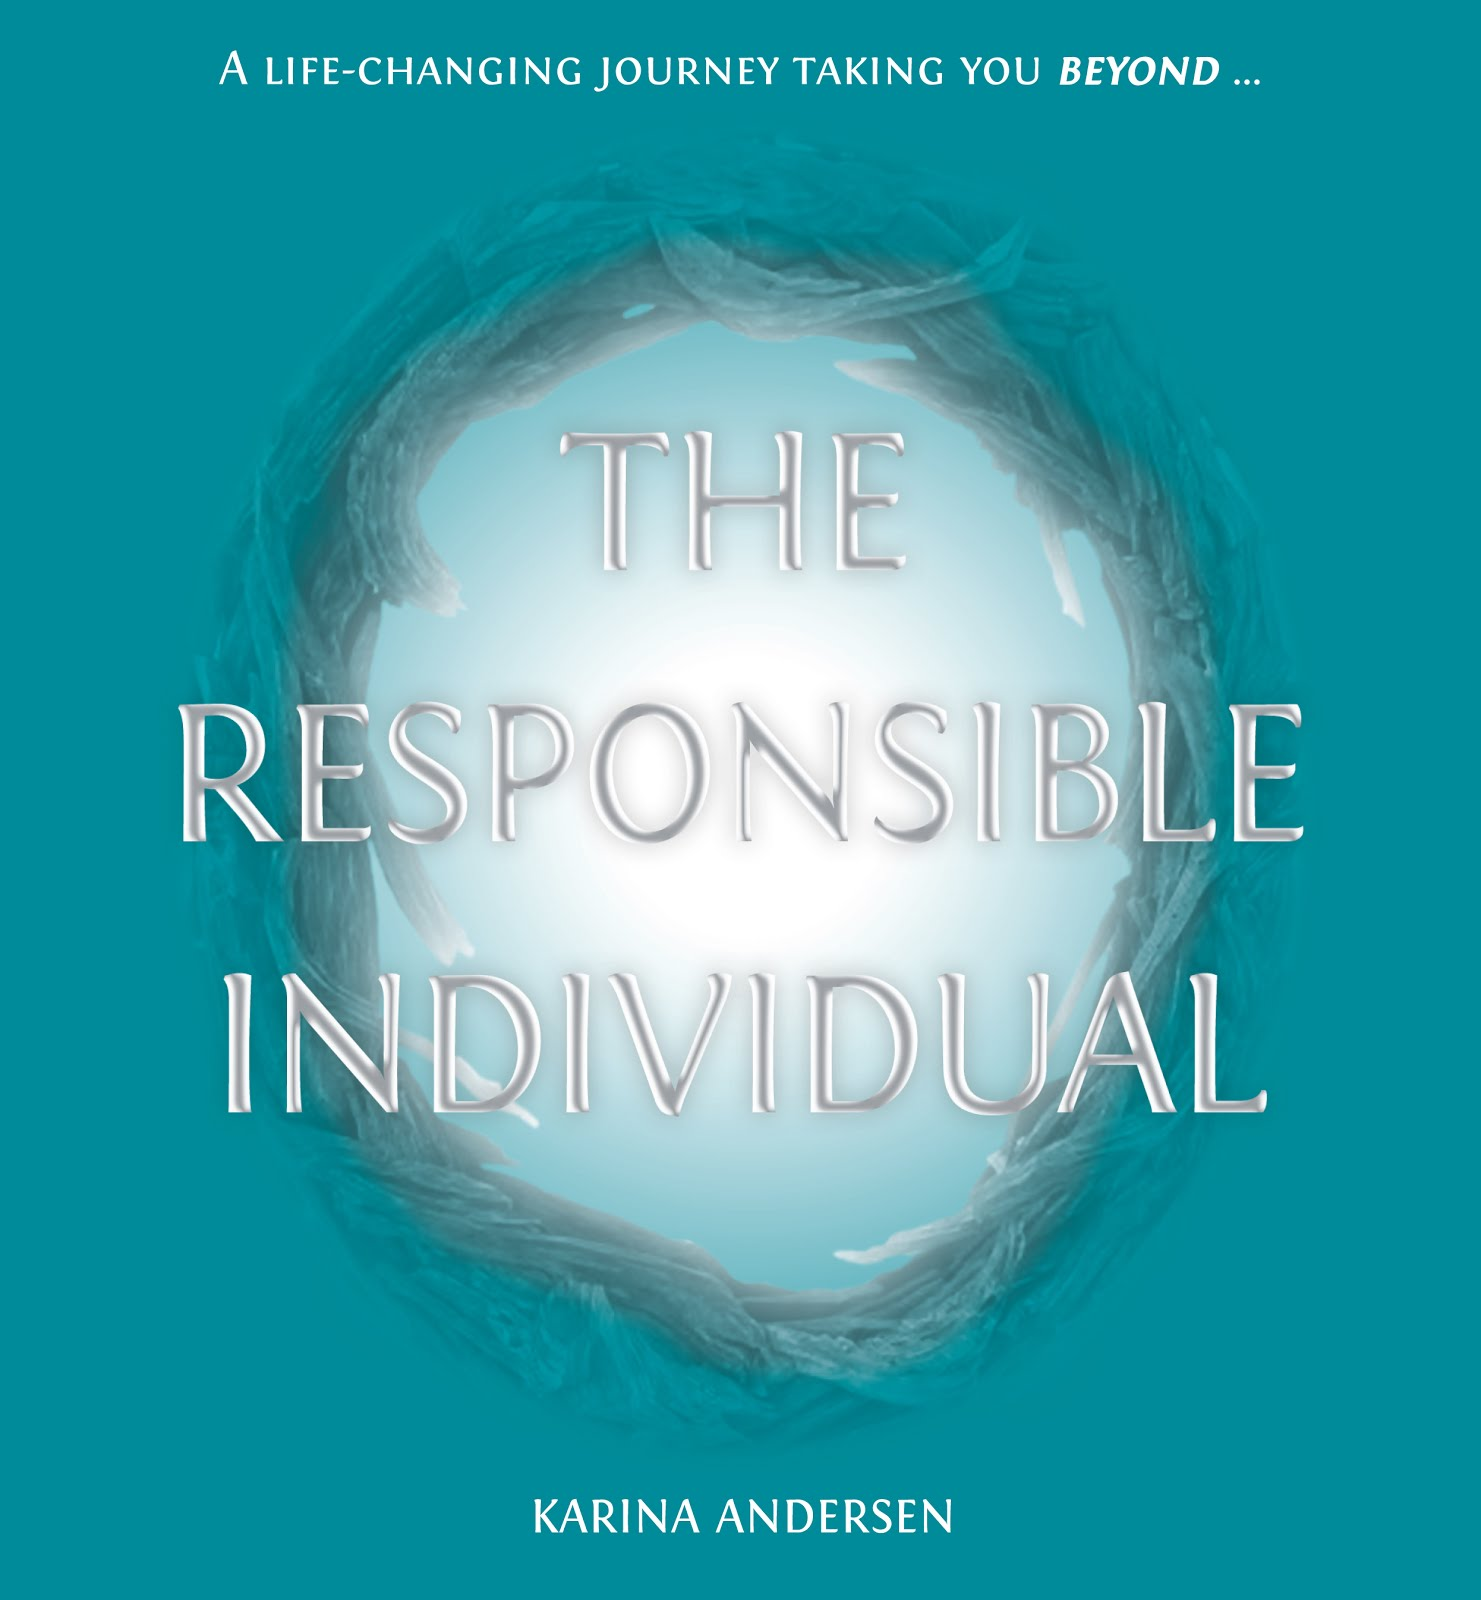 THE RESPONSIBLE INDIVIDUAL (PUBLISHED BOOK)